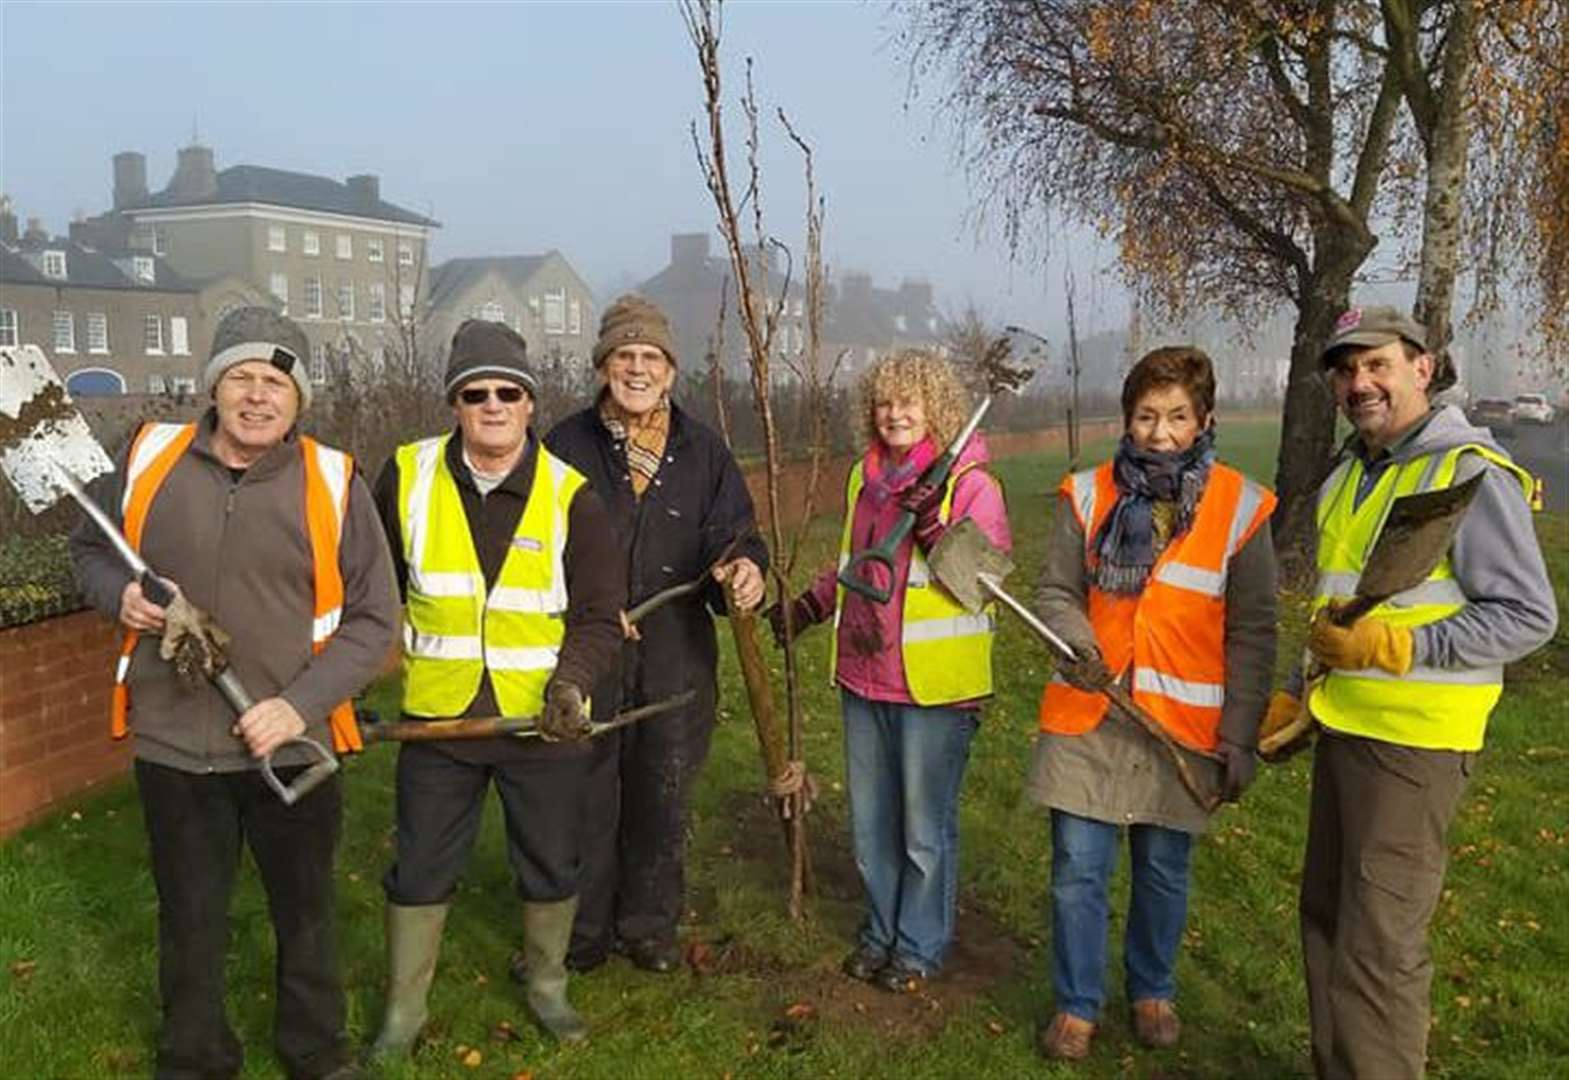 Wisbech volunteers hope trees will blossom next spring